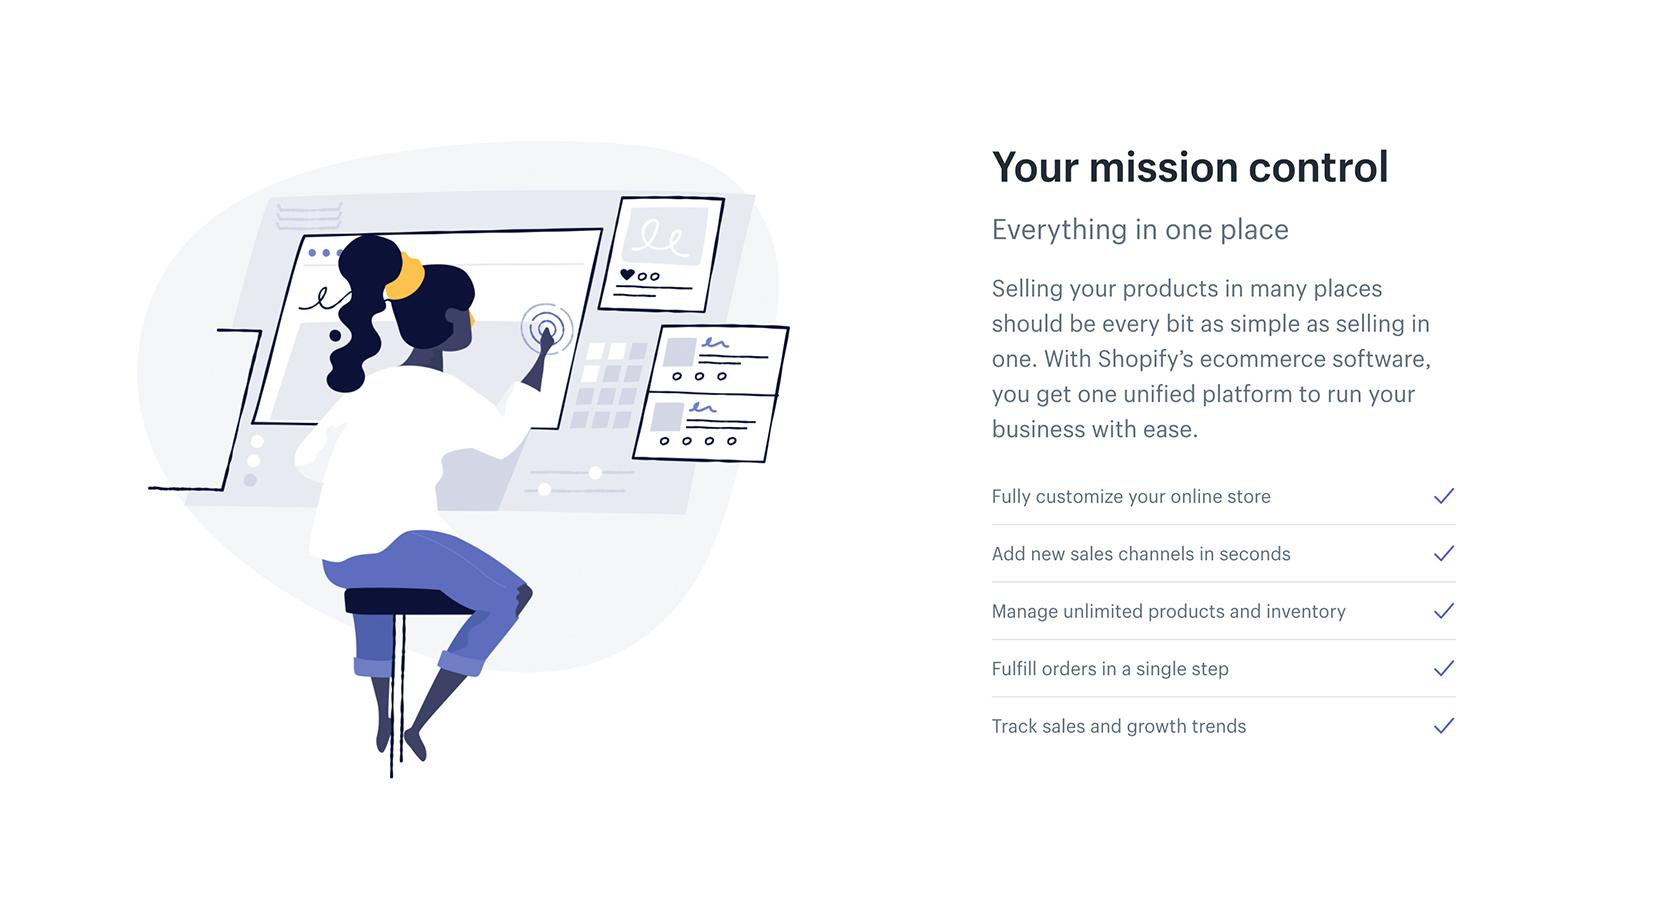 Shopify brand website illustrations by Meg Robichaud